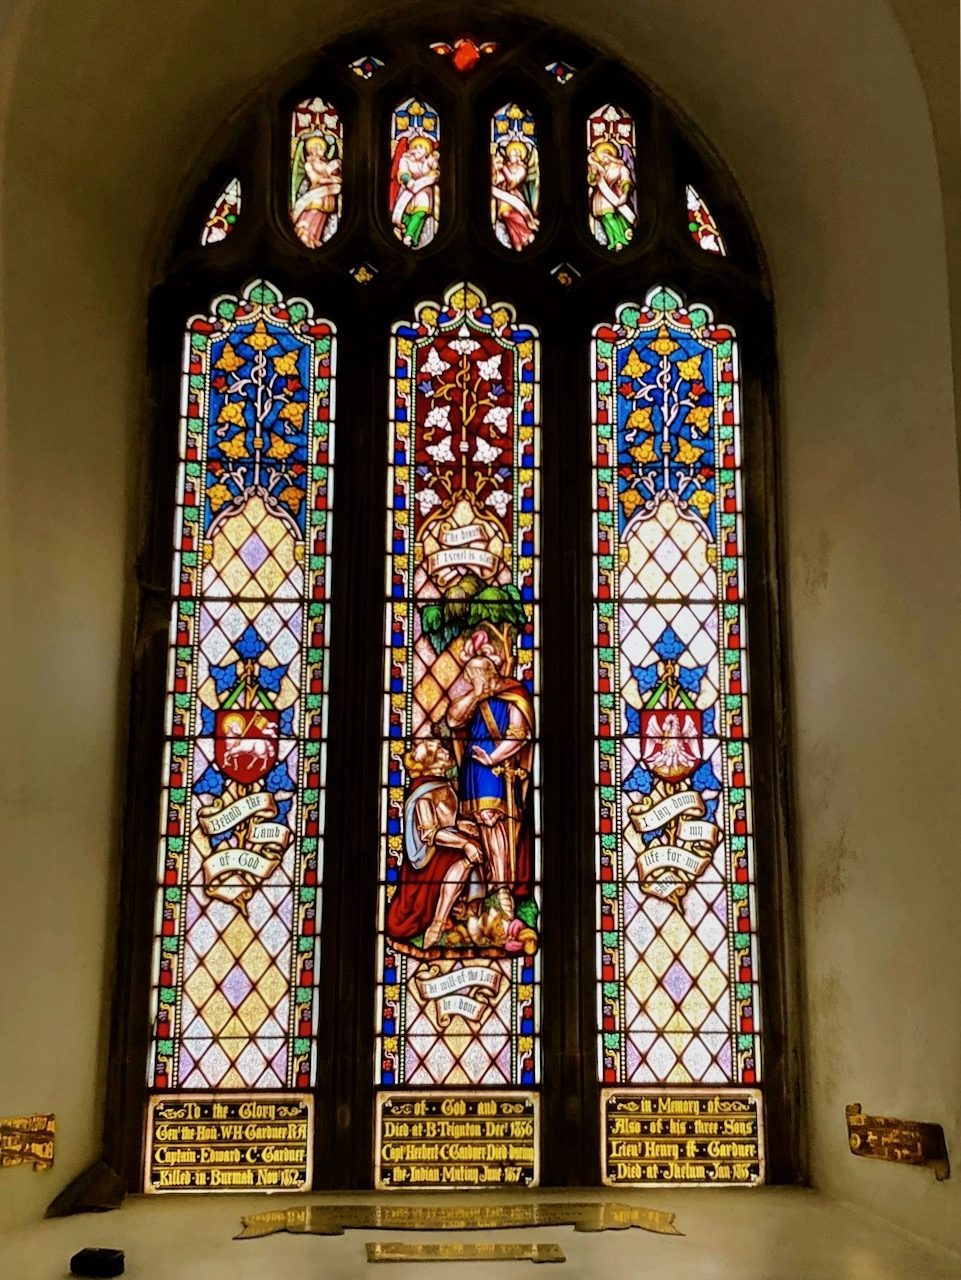 Gardner Family Memorial Window, Bishopsteignton Church